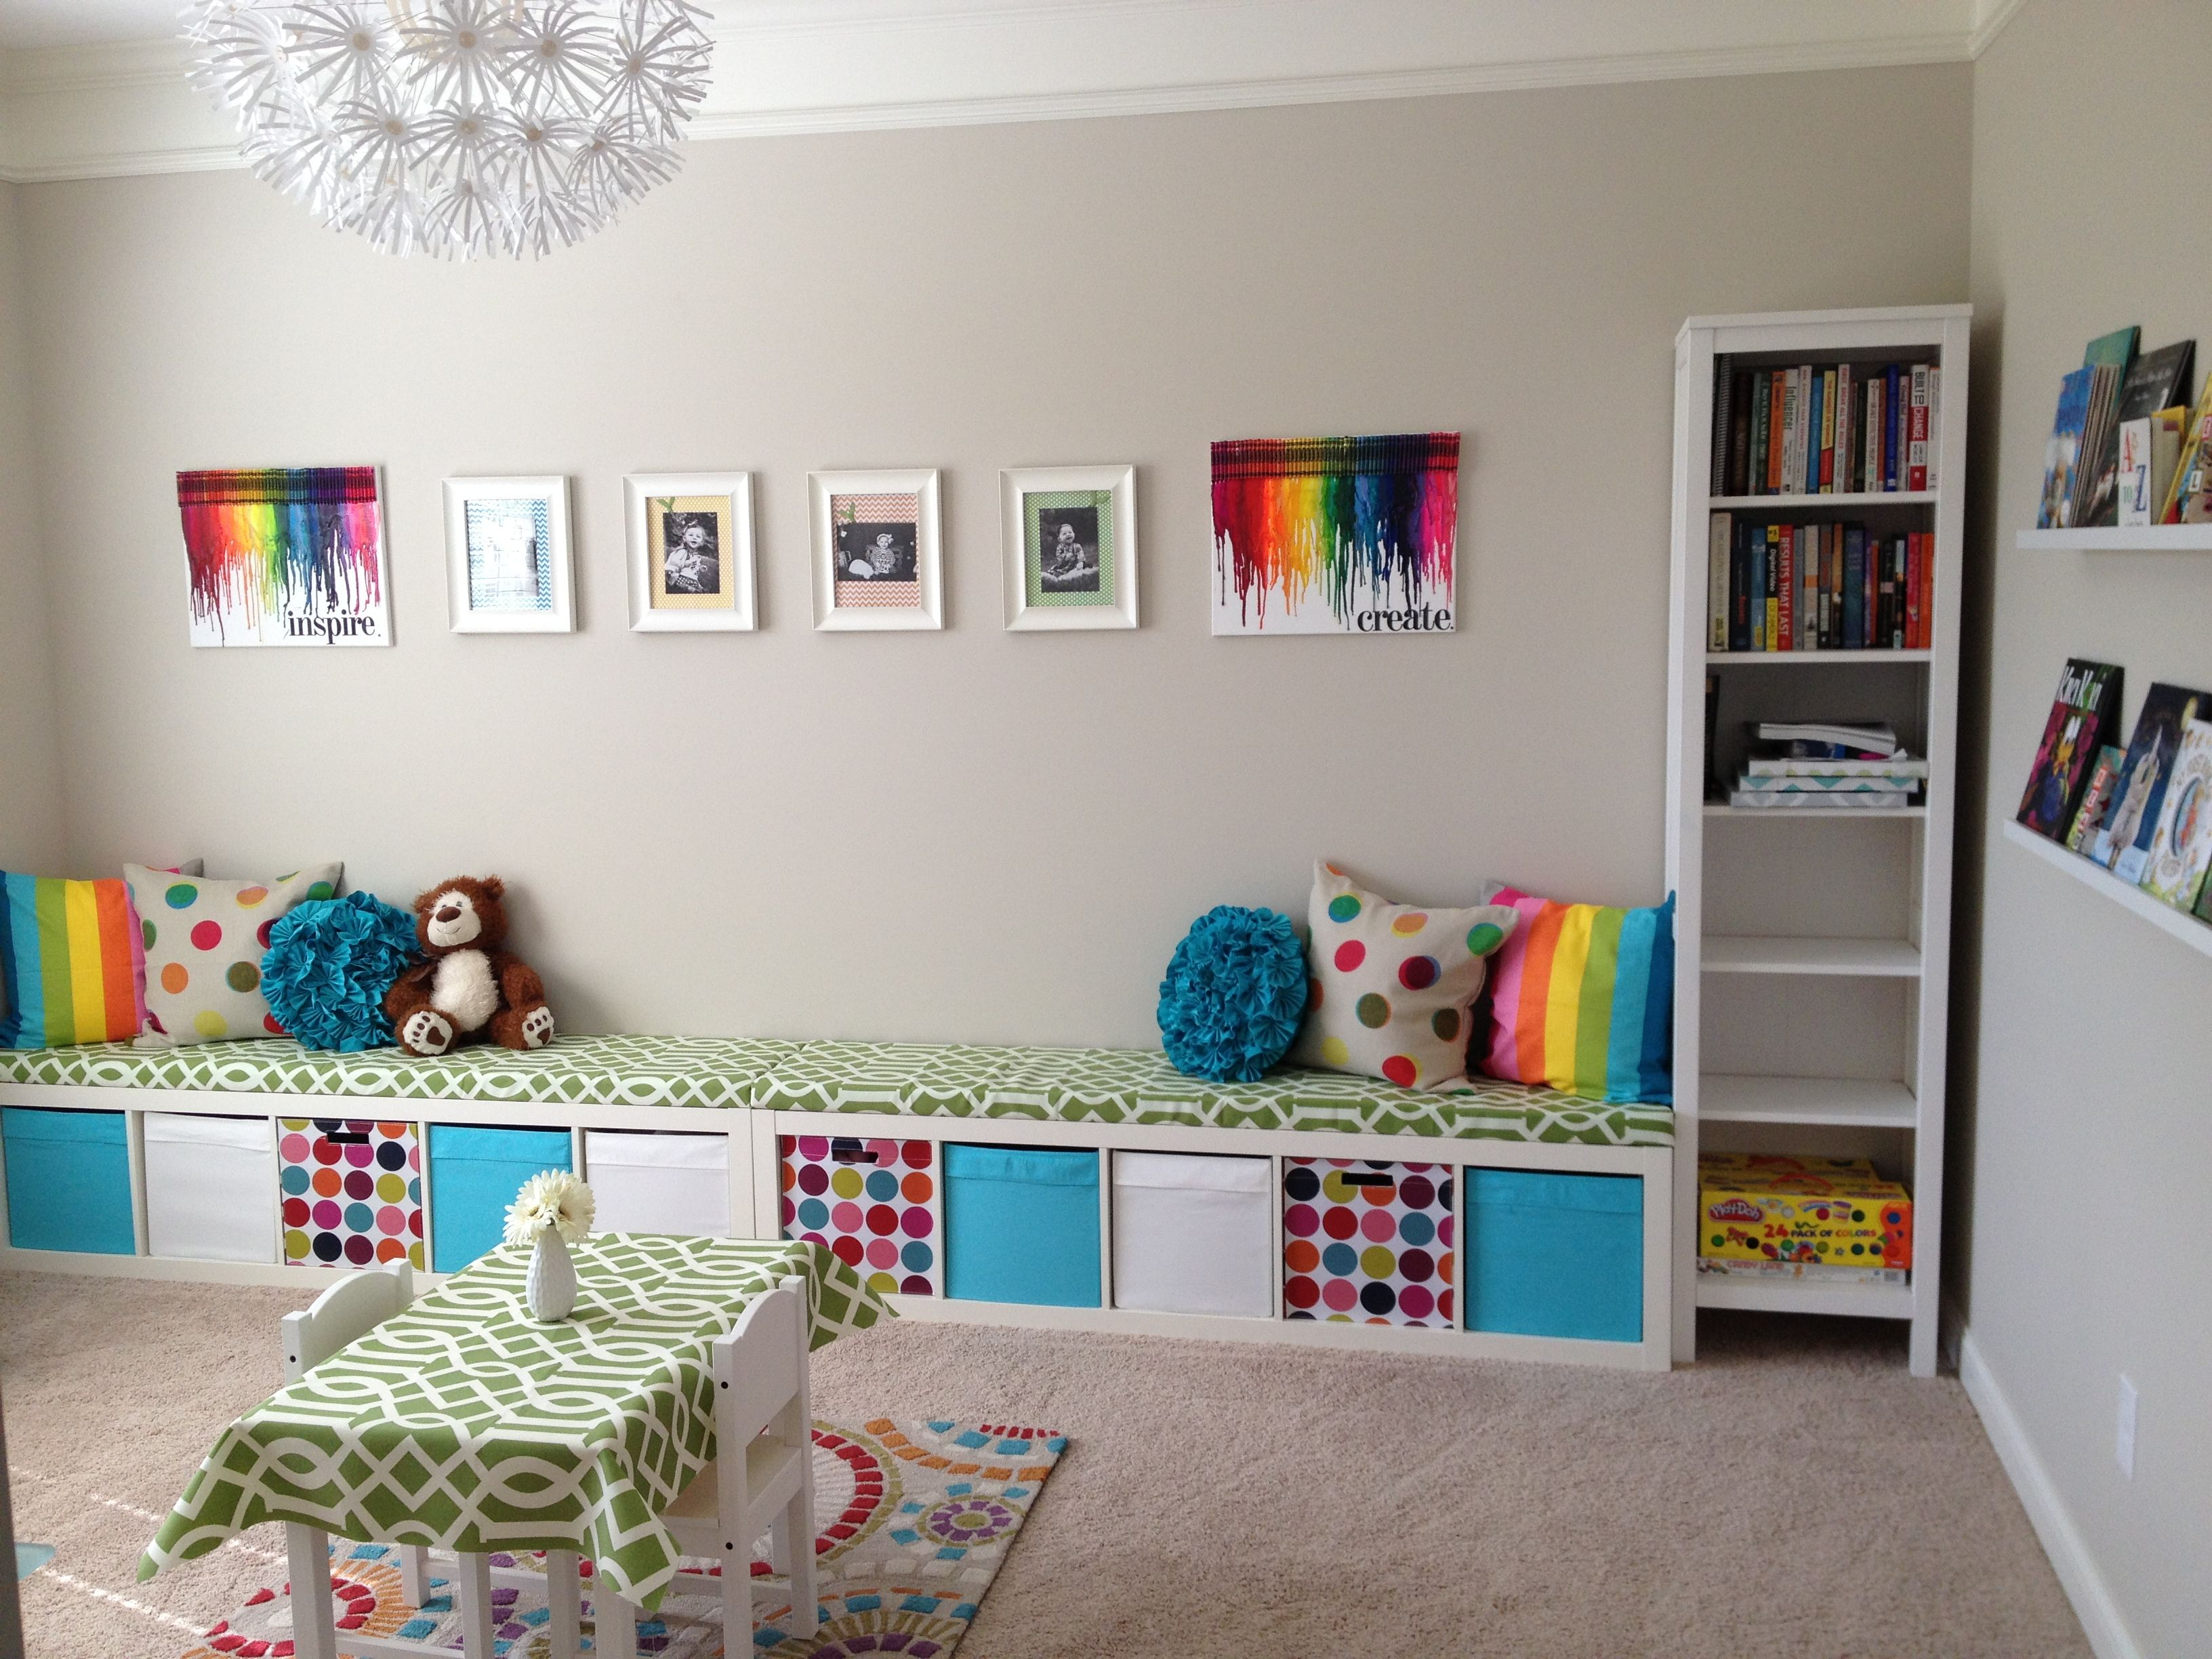 Pin By Buffy Snider On Play Room Simple Playroom Storage Kids Room Playroom Storage